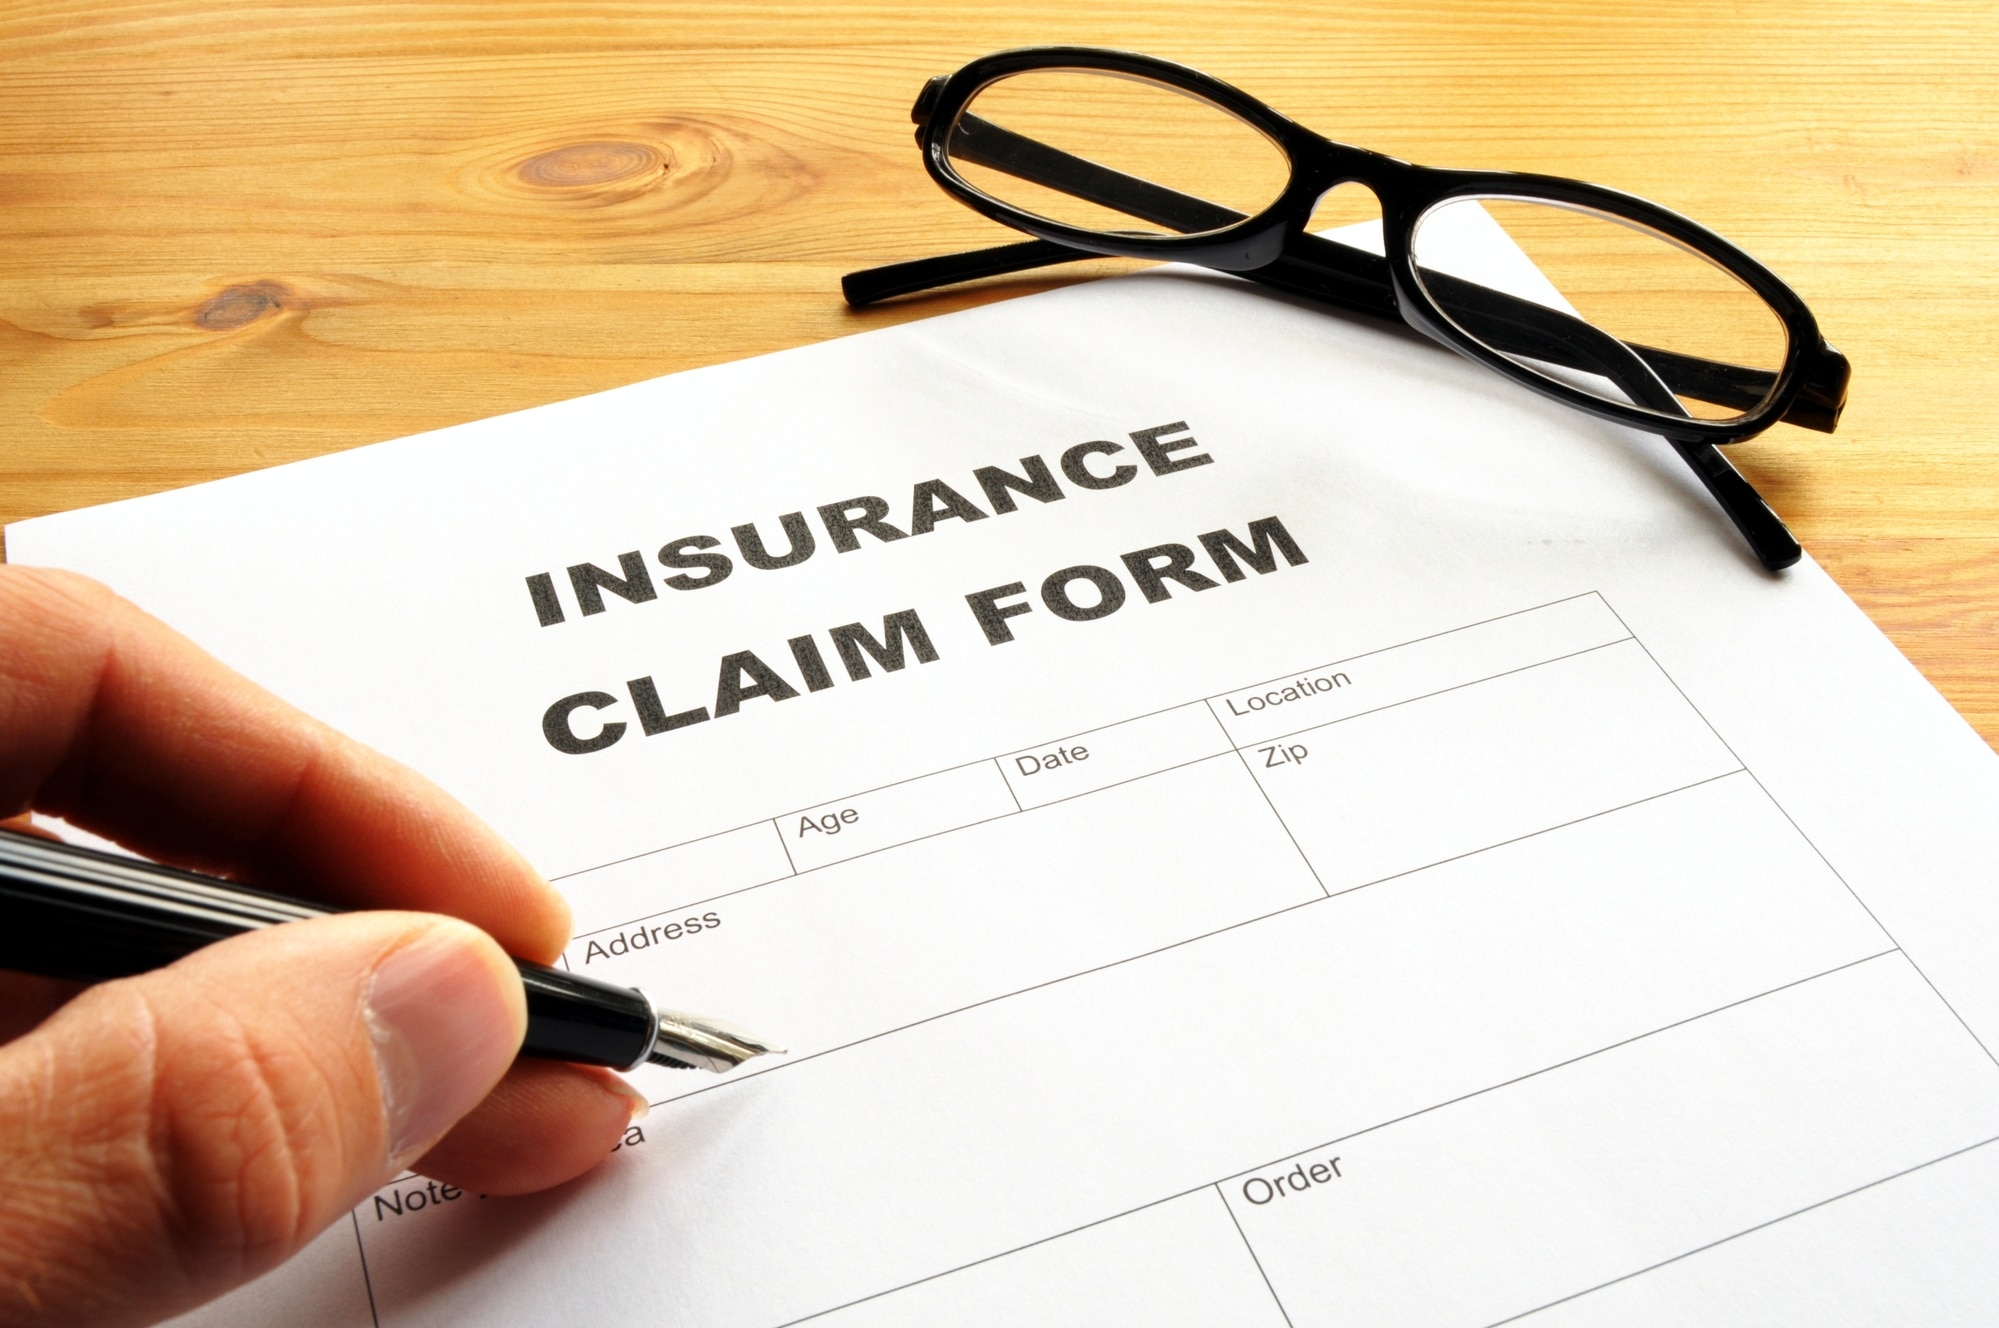 Claims and Service